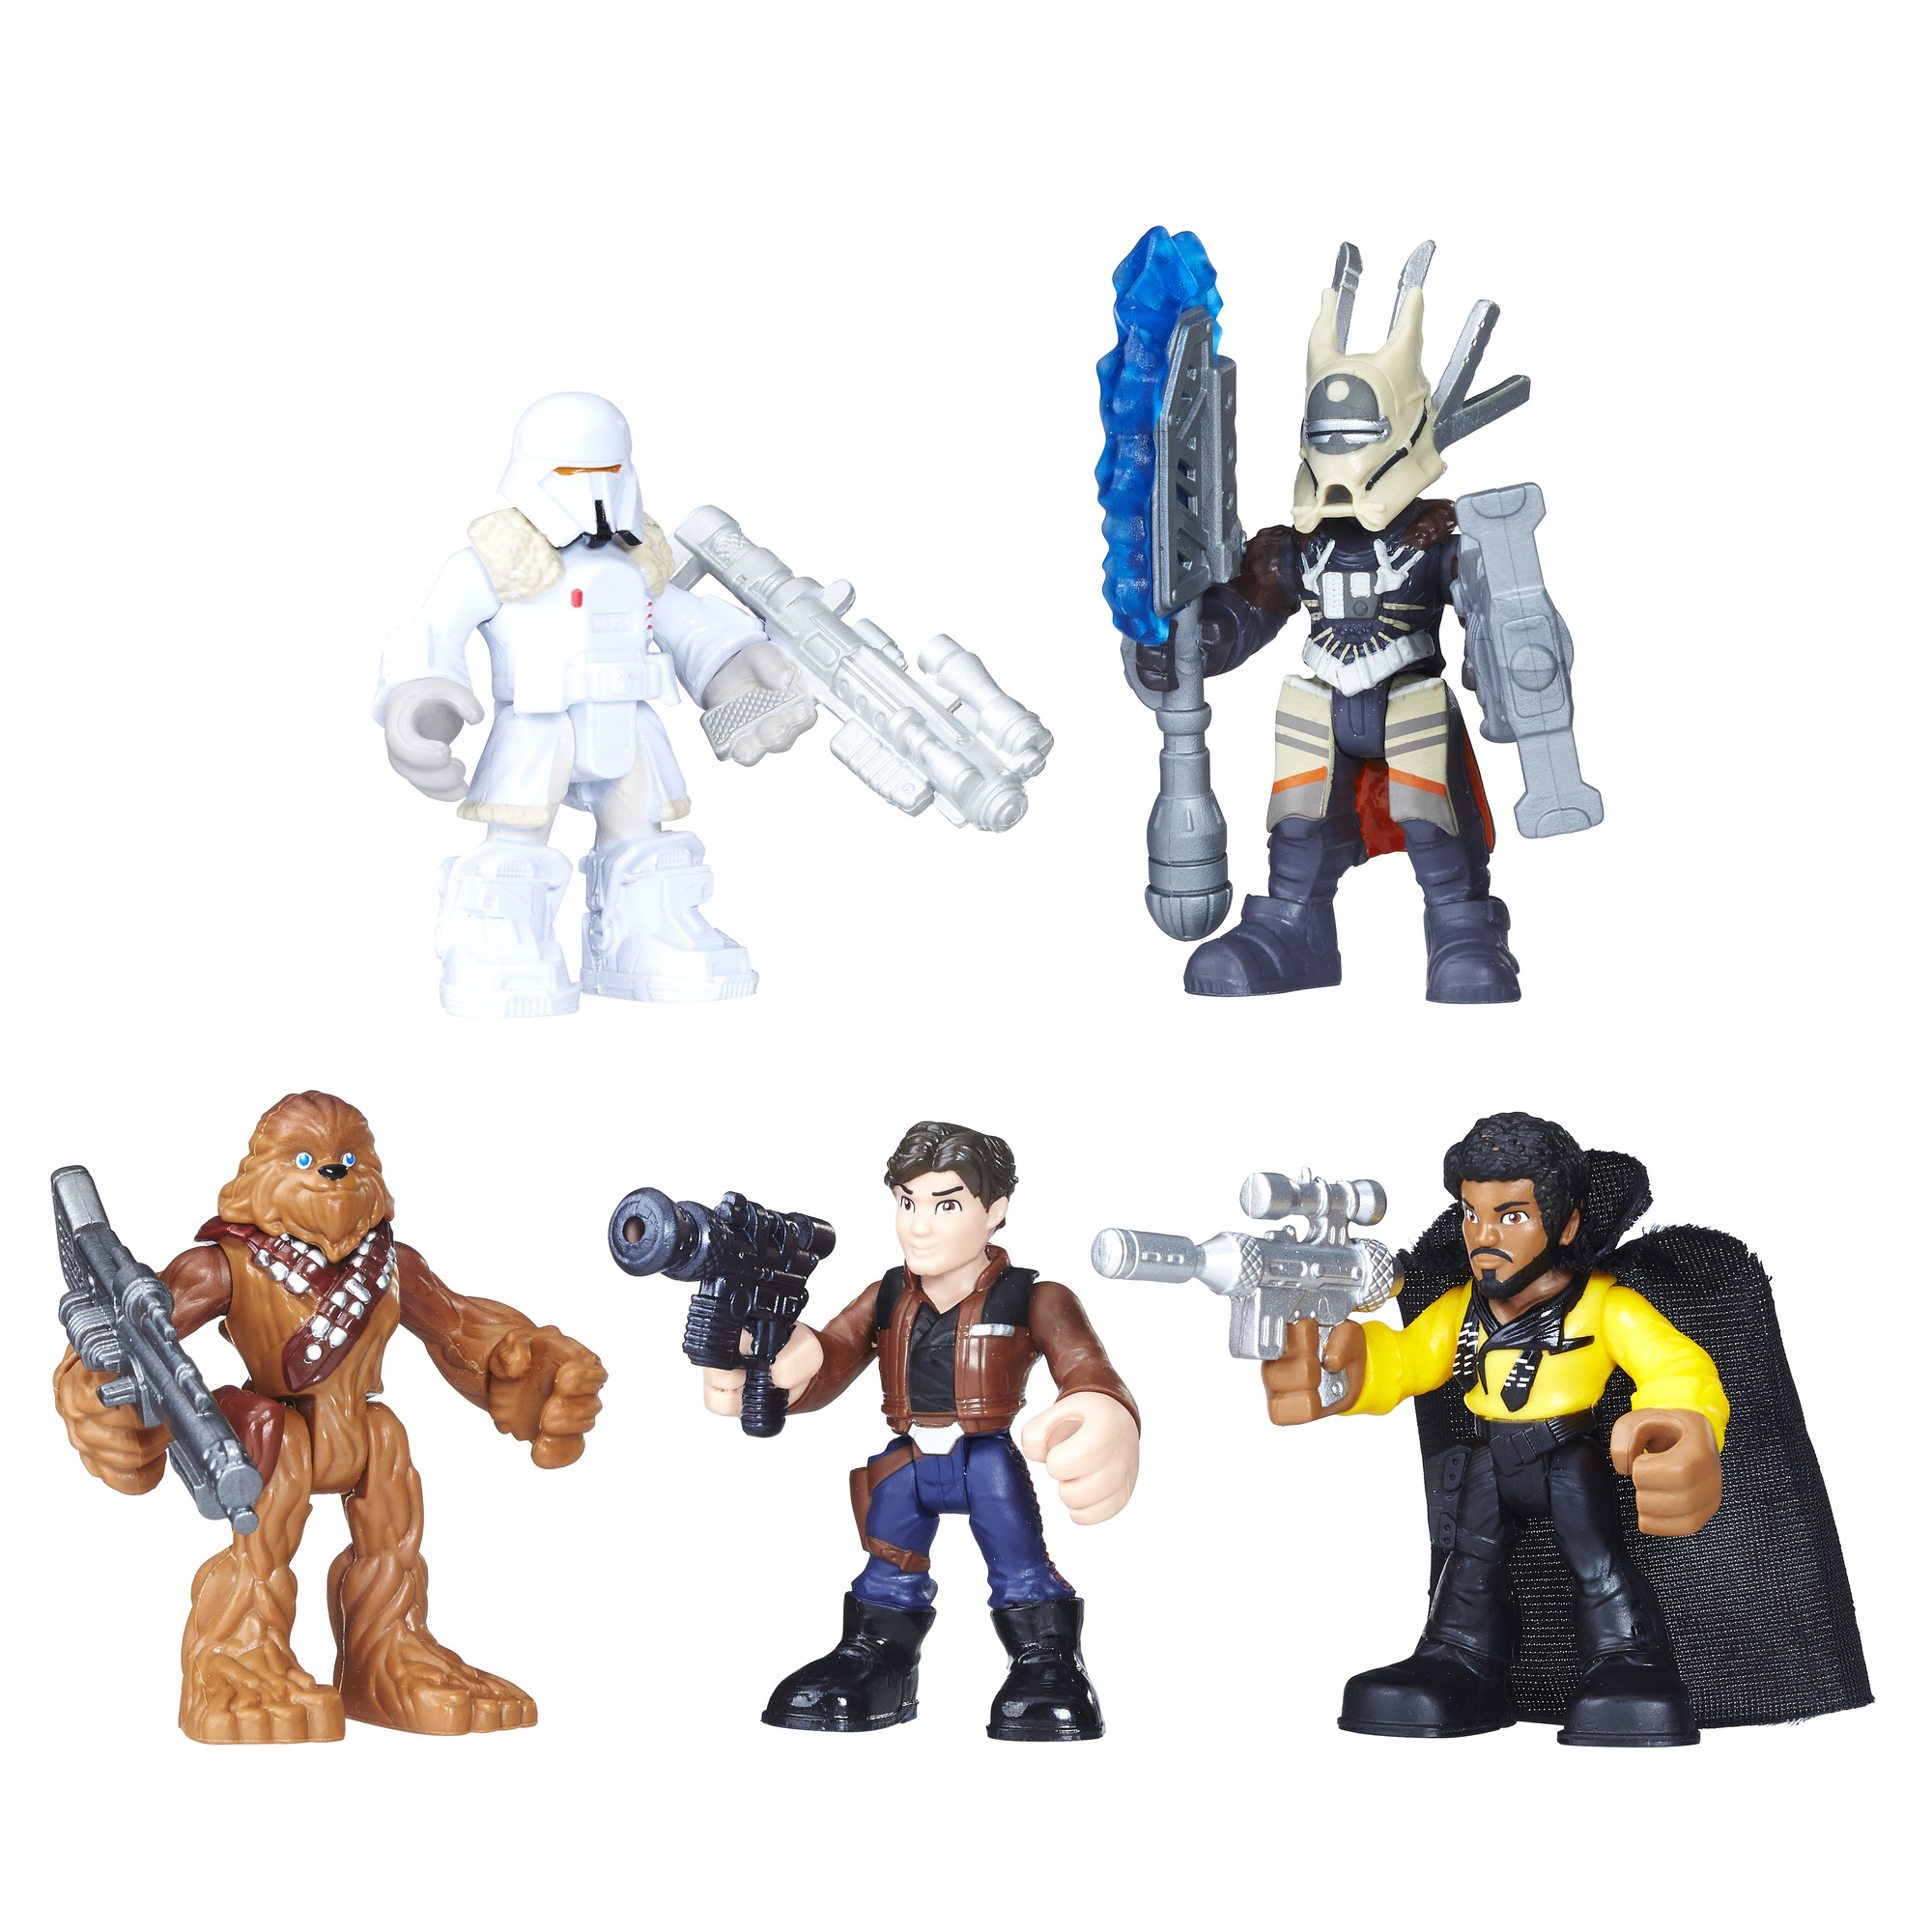 Solo: ASWS Galactic Heroes Smugglers and Scoundrels Figure Pack 2